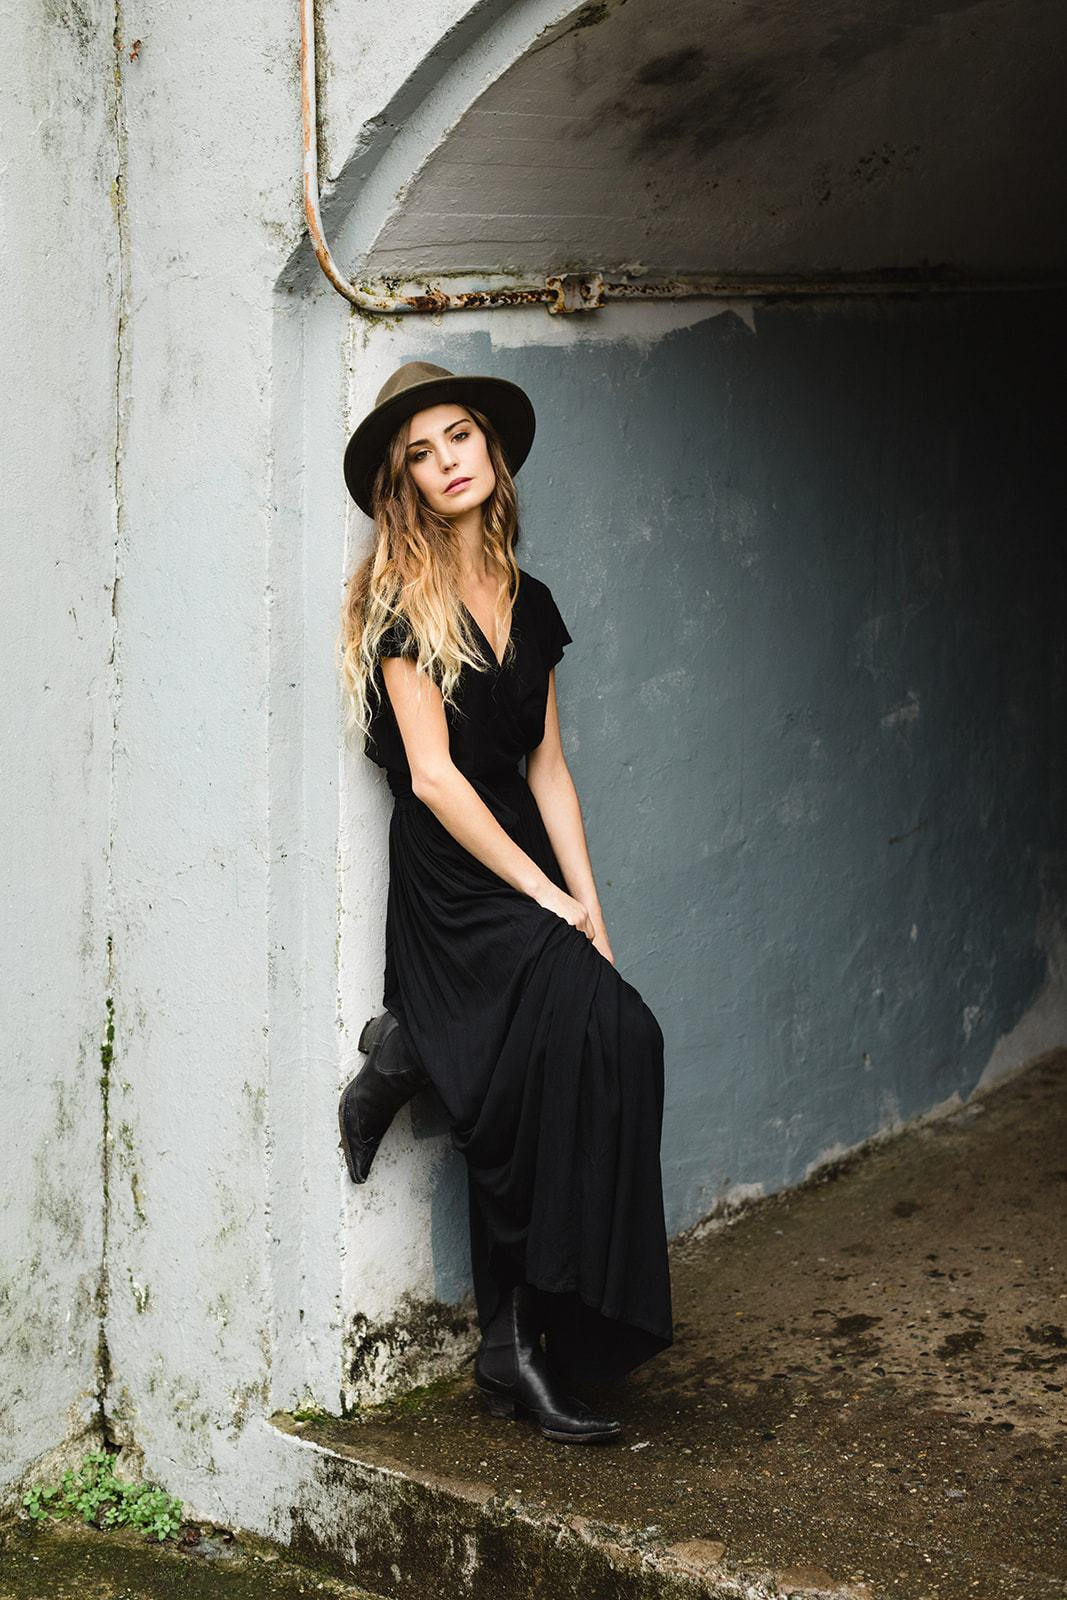 Stevie Maxi Skirt | Black - Tiny Town Essentials